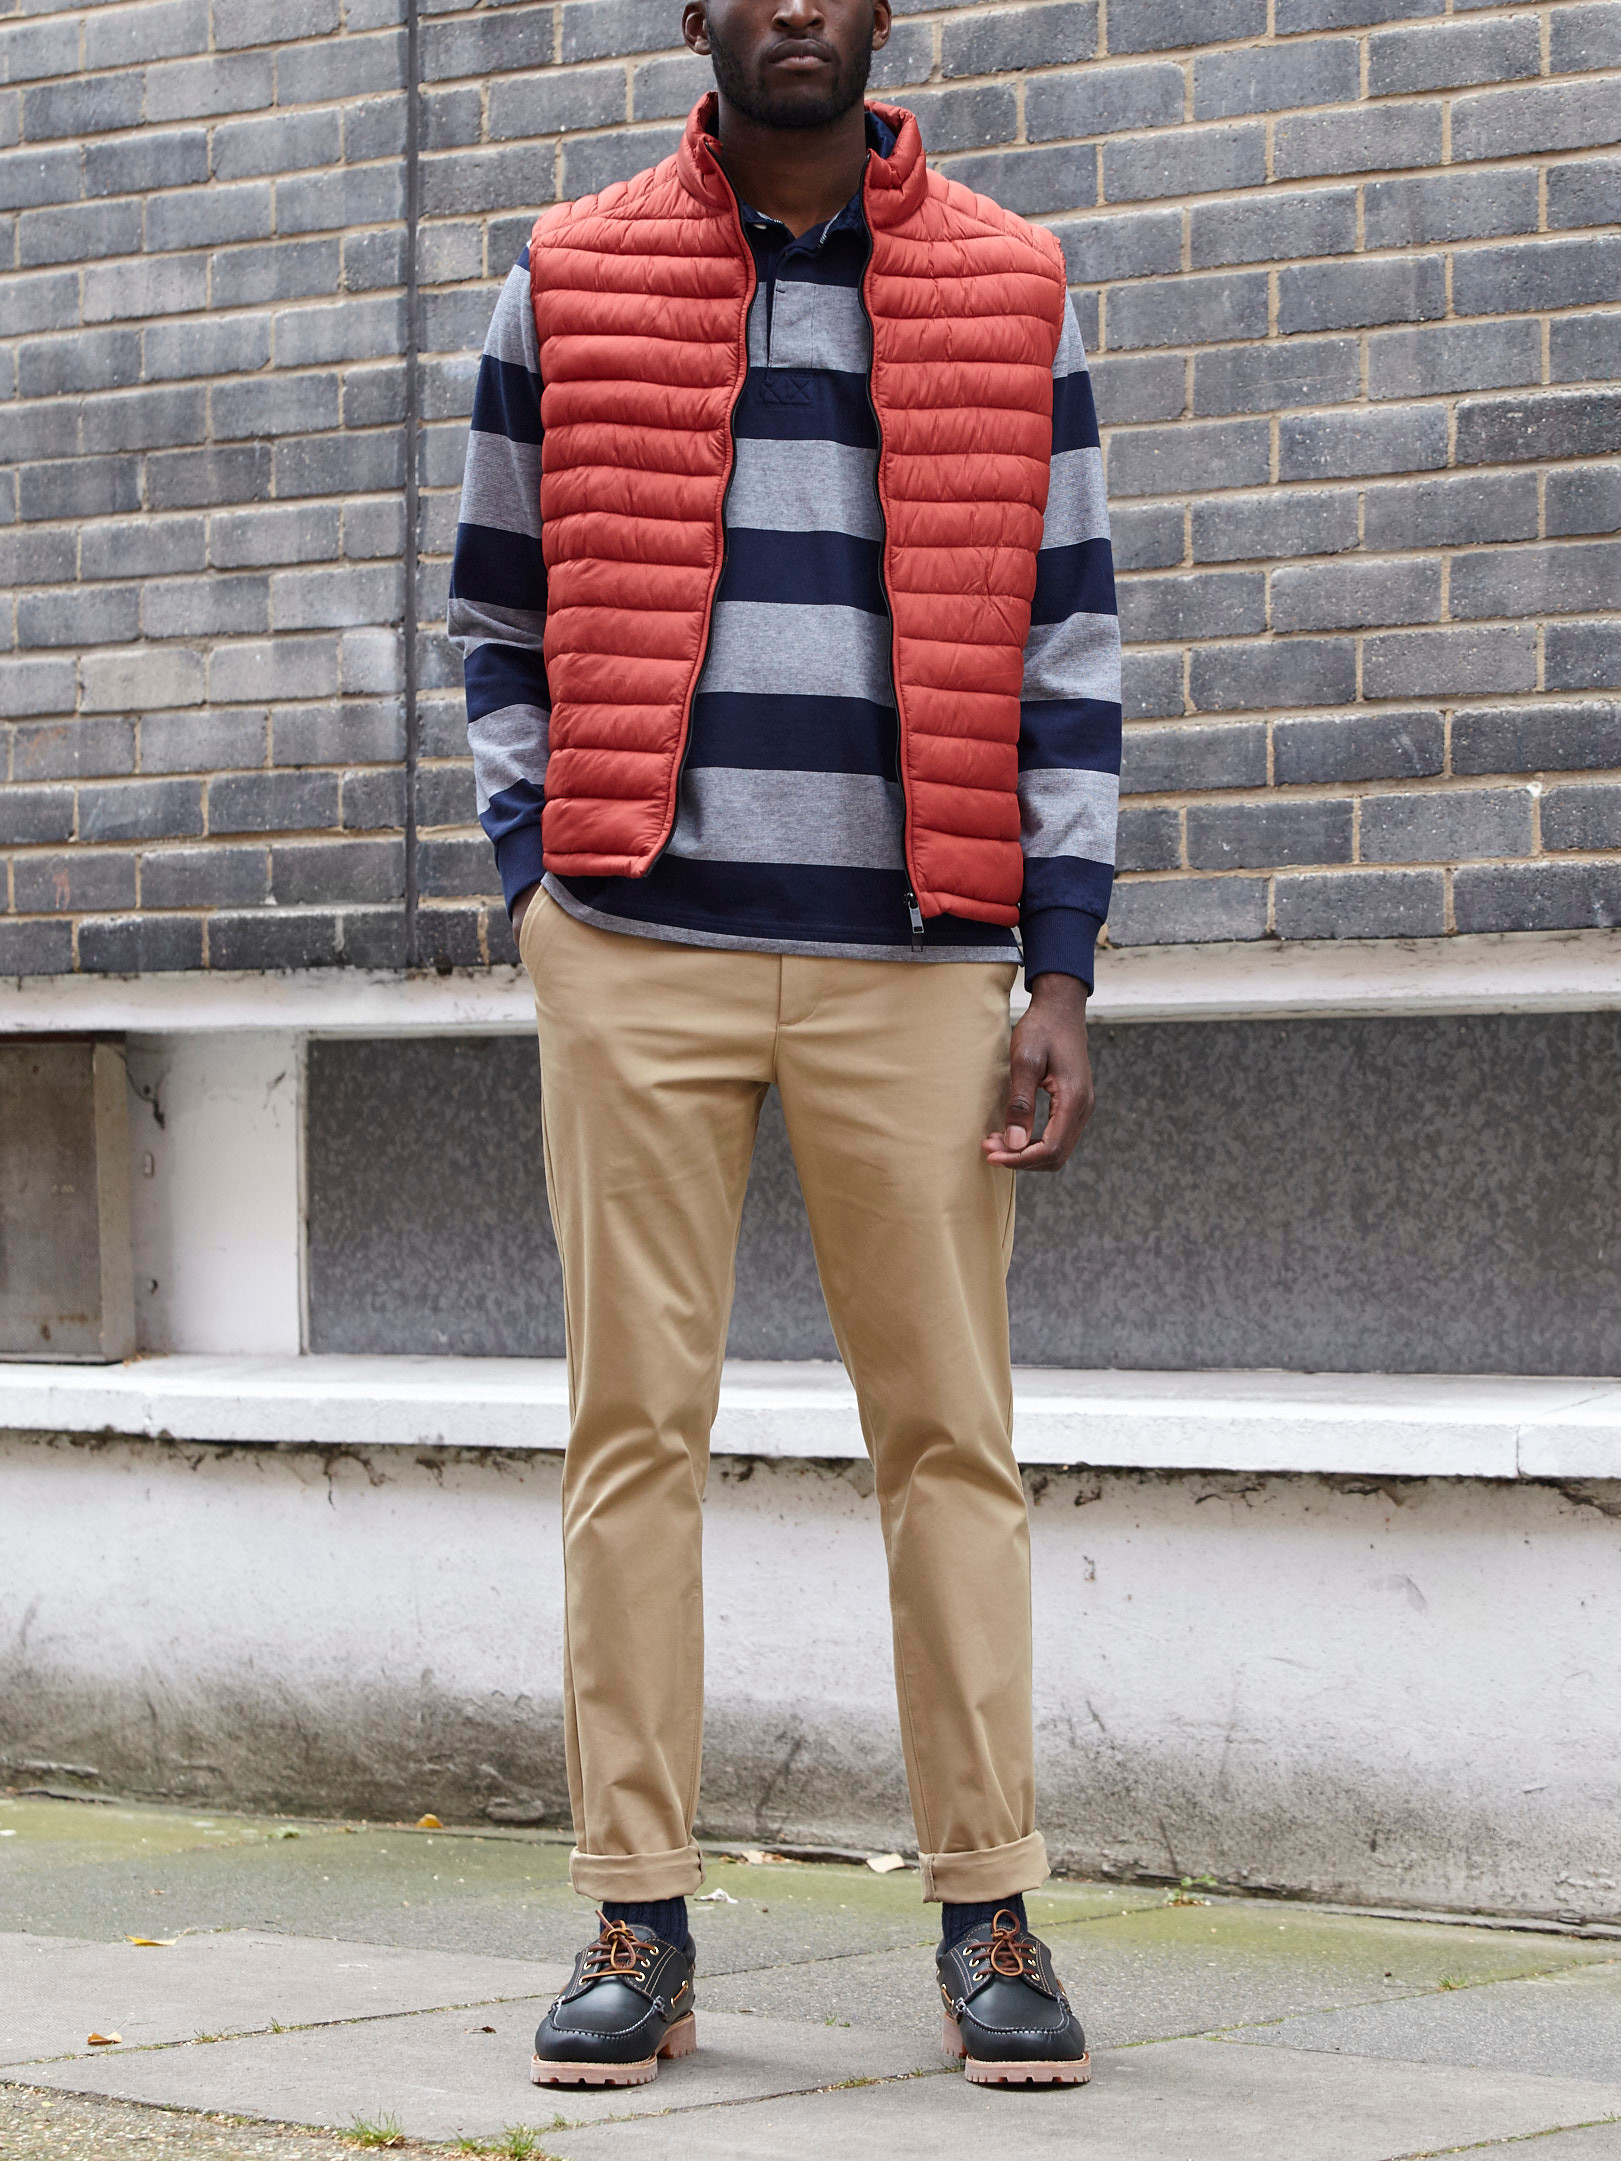 Men's outfit idea for 2021 with gilet, rugby shirt, stone chinos, boat shoes. Suitable for spring and autumn.